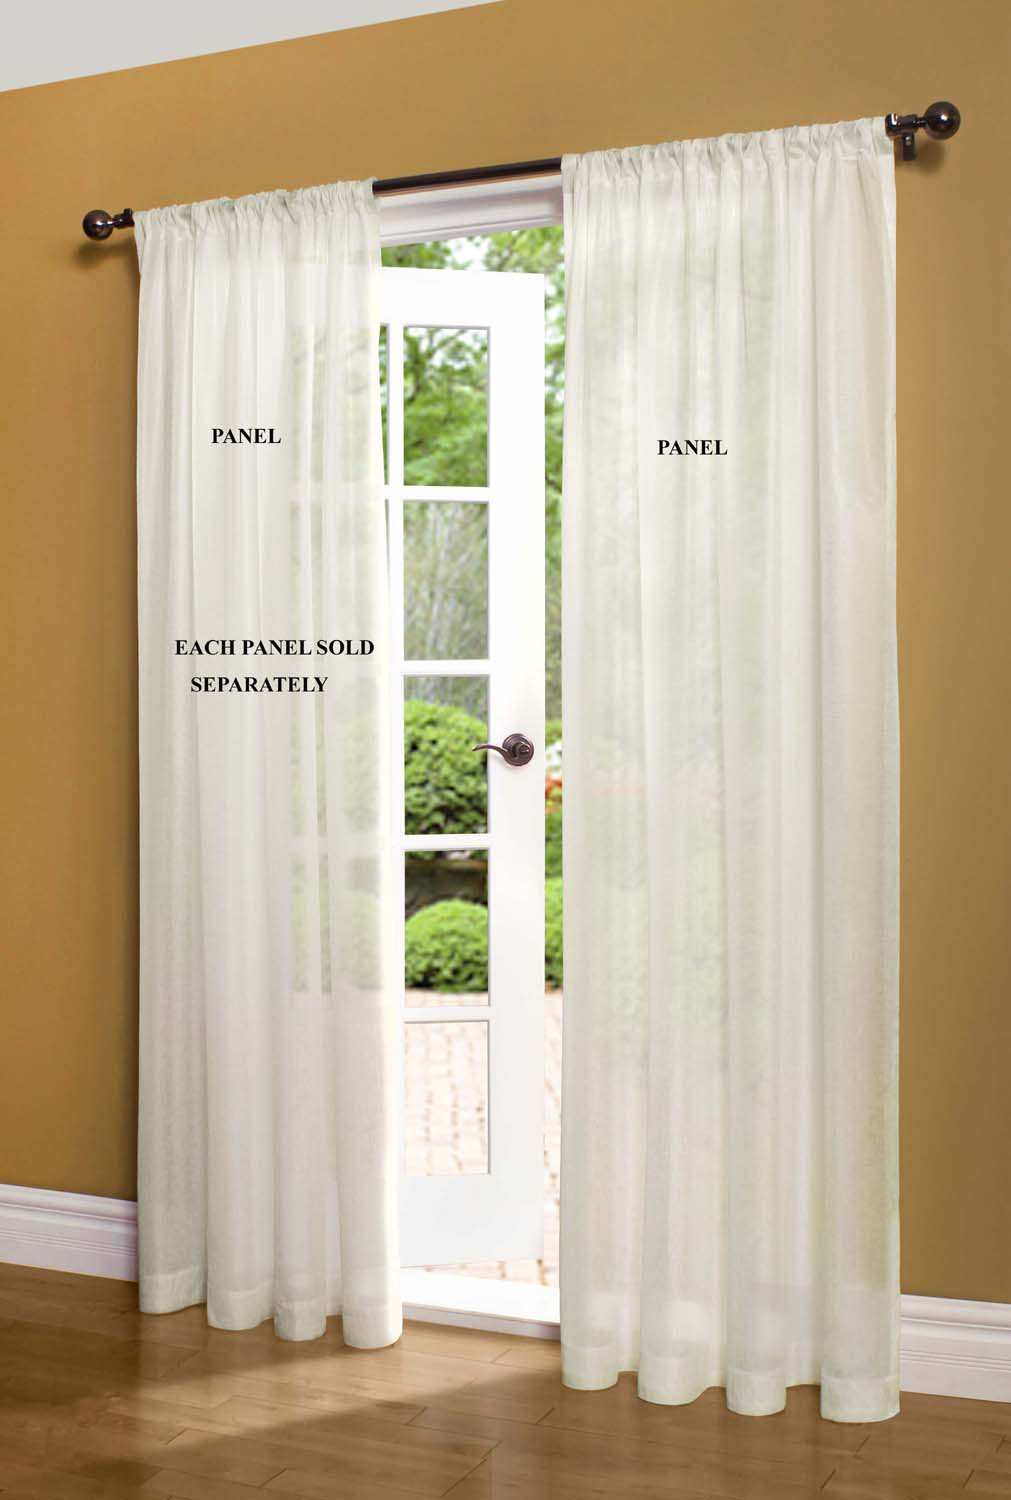 Sheer Curtain And Door Panels U2013 Sheer Curtain Panels At TheCurtainShop.com